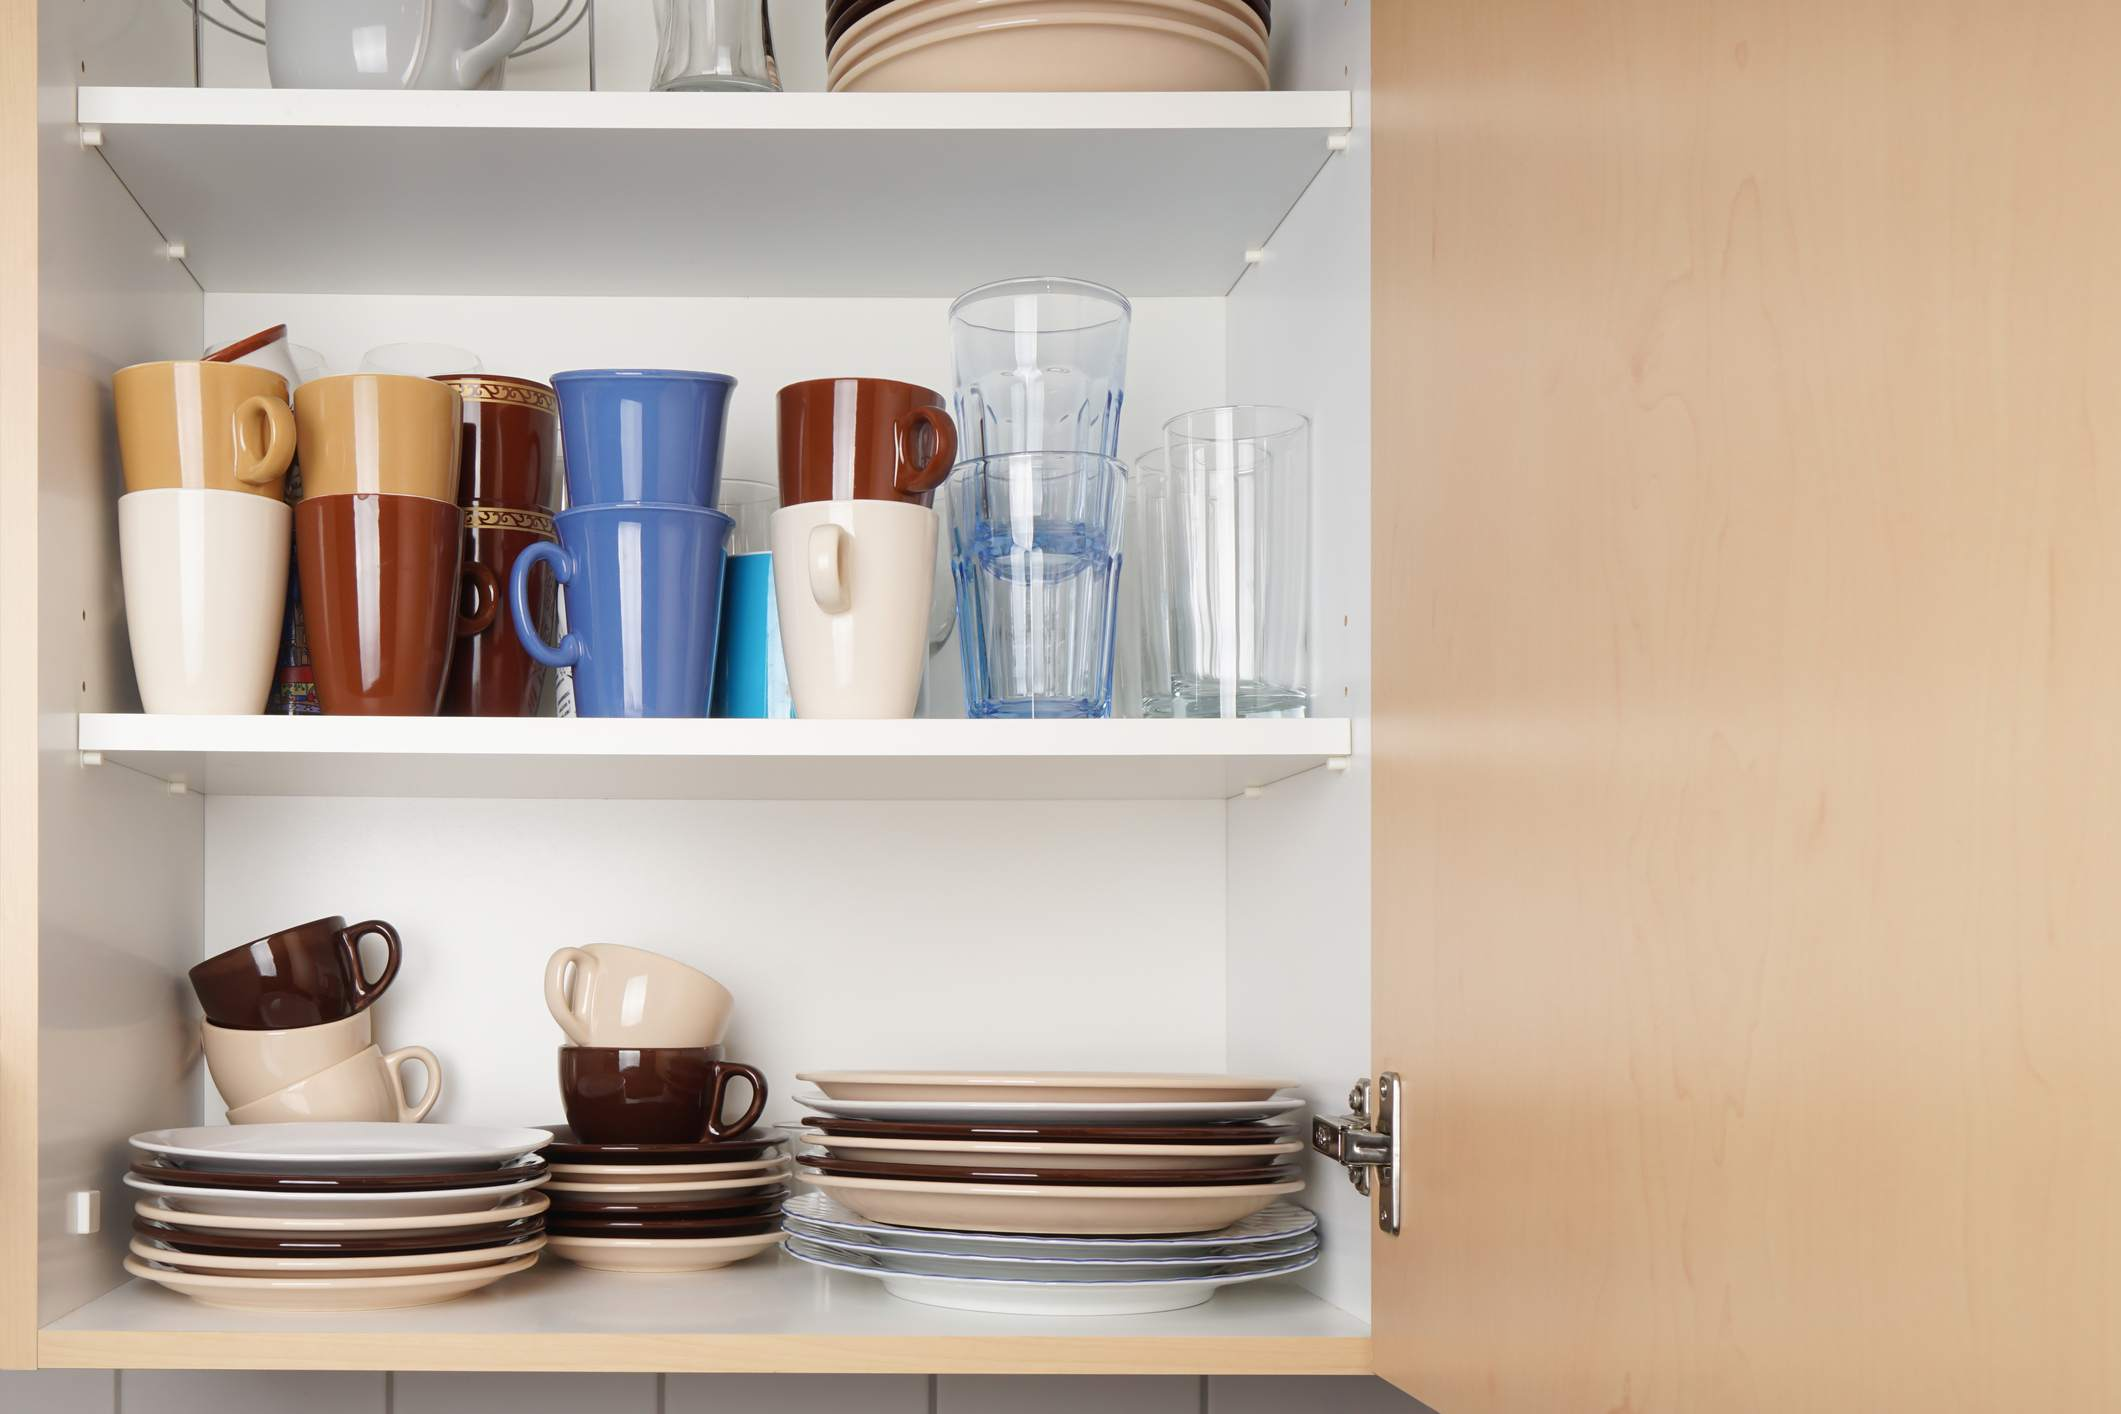 cabinet with glasses, mugs, and plates